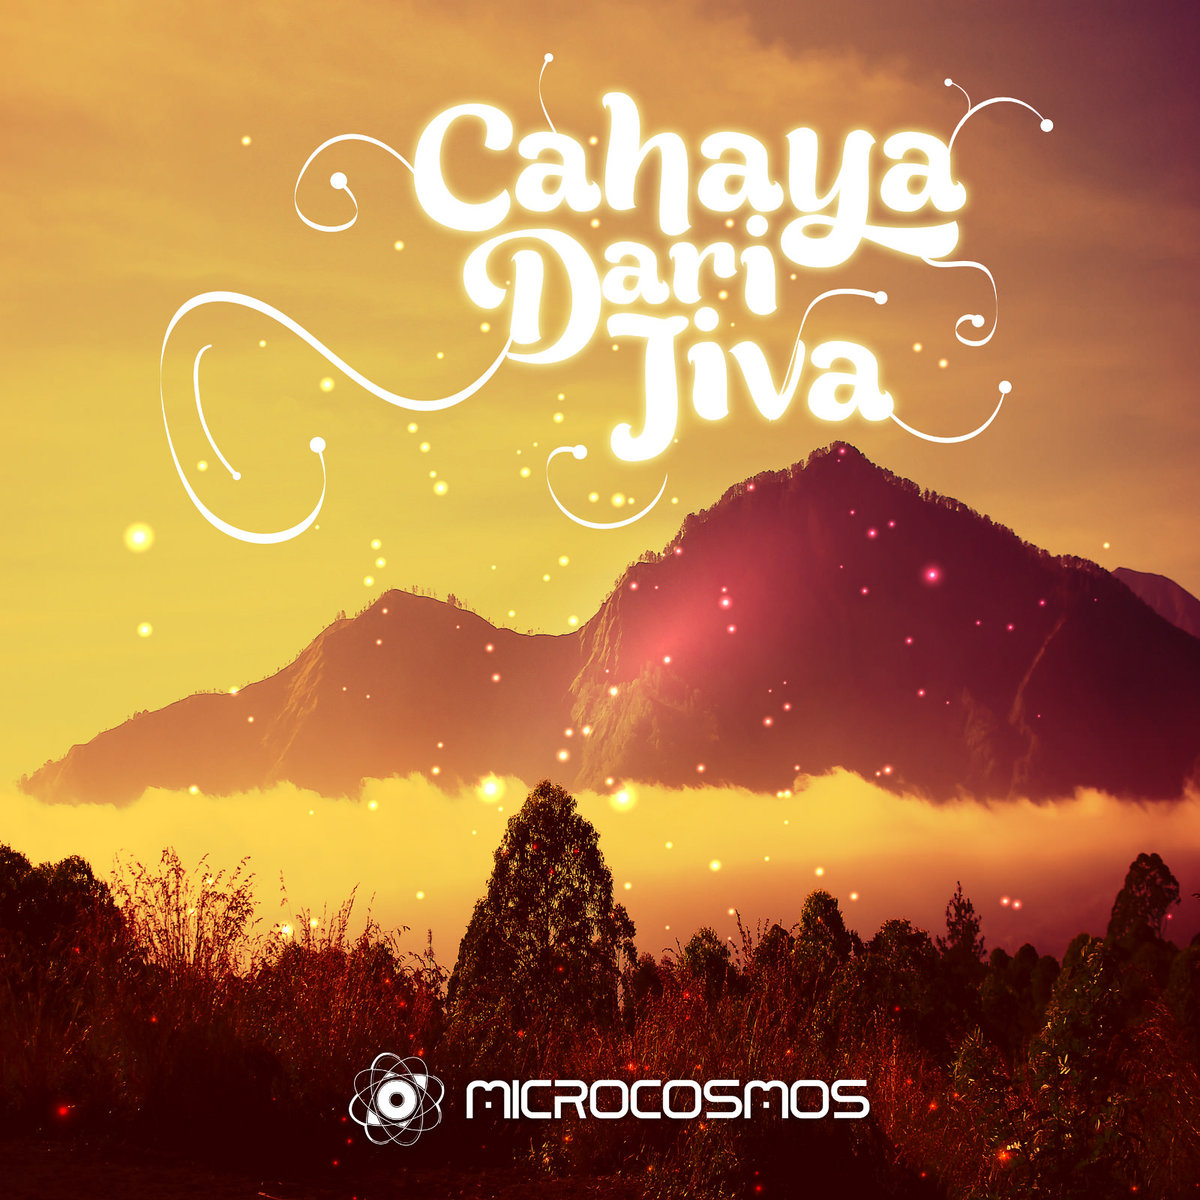 Tymek - Transgalactic Jazz @ 'Various Artists - Cahaya Dari Jiva' album (ambient, chill-out)